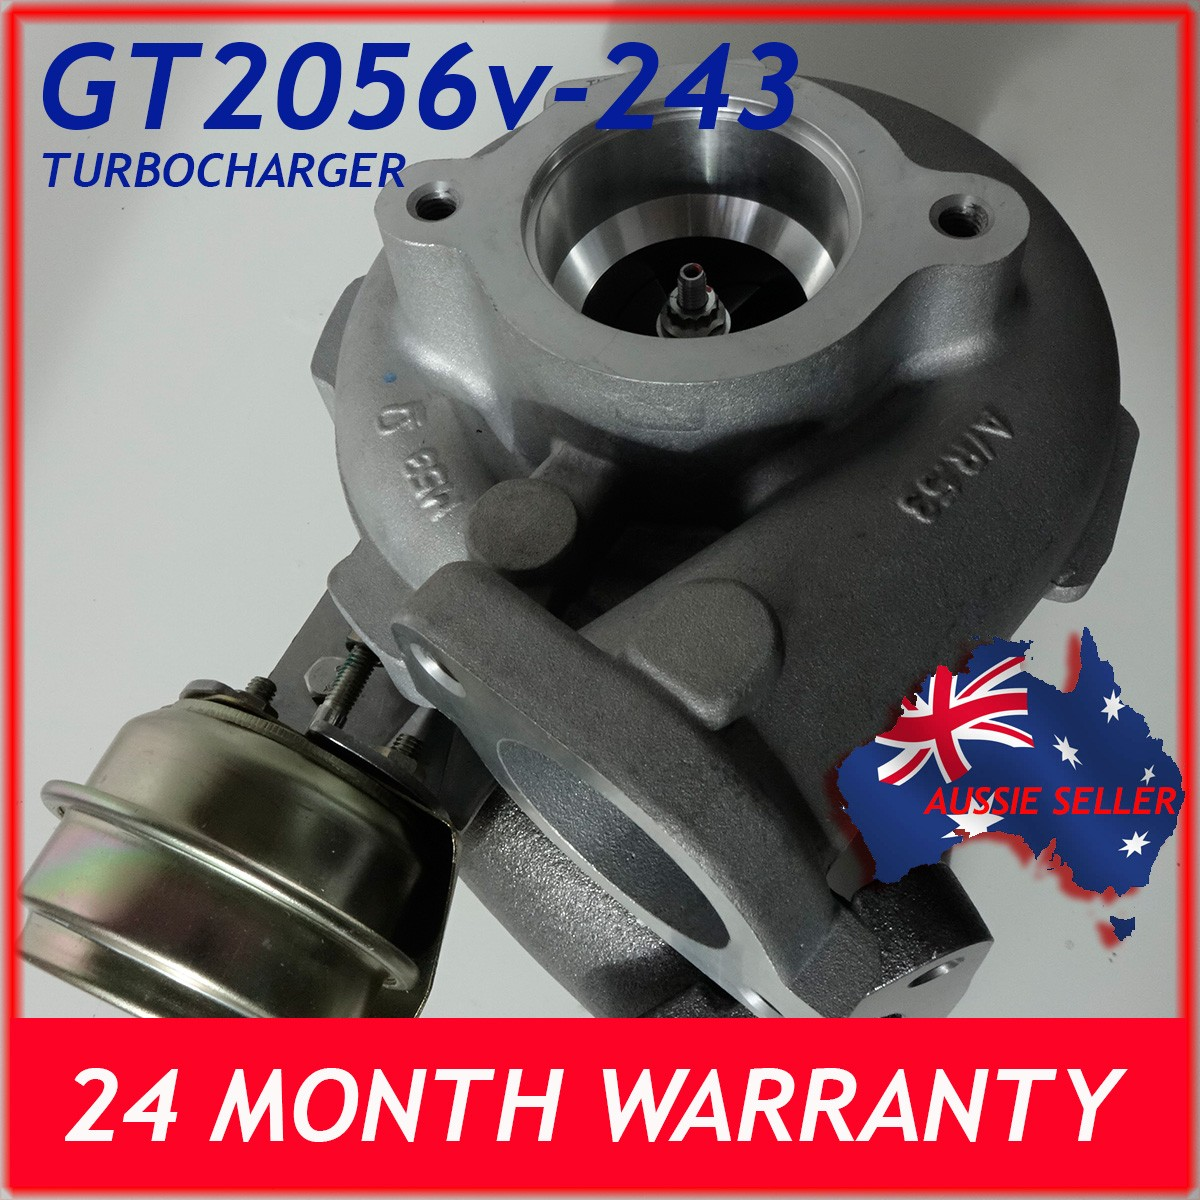 nissan-navarra-d40-turbocharger-gt2056v-243-compressor-main1